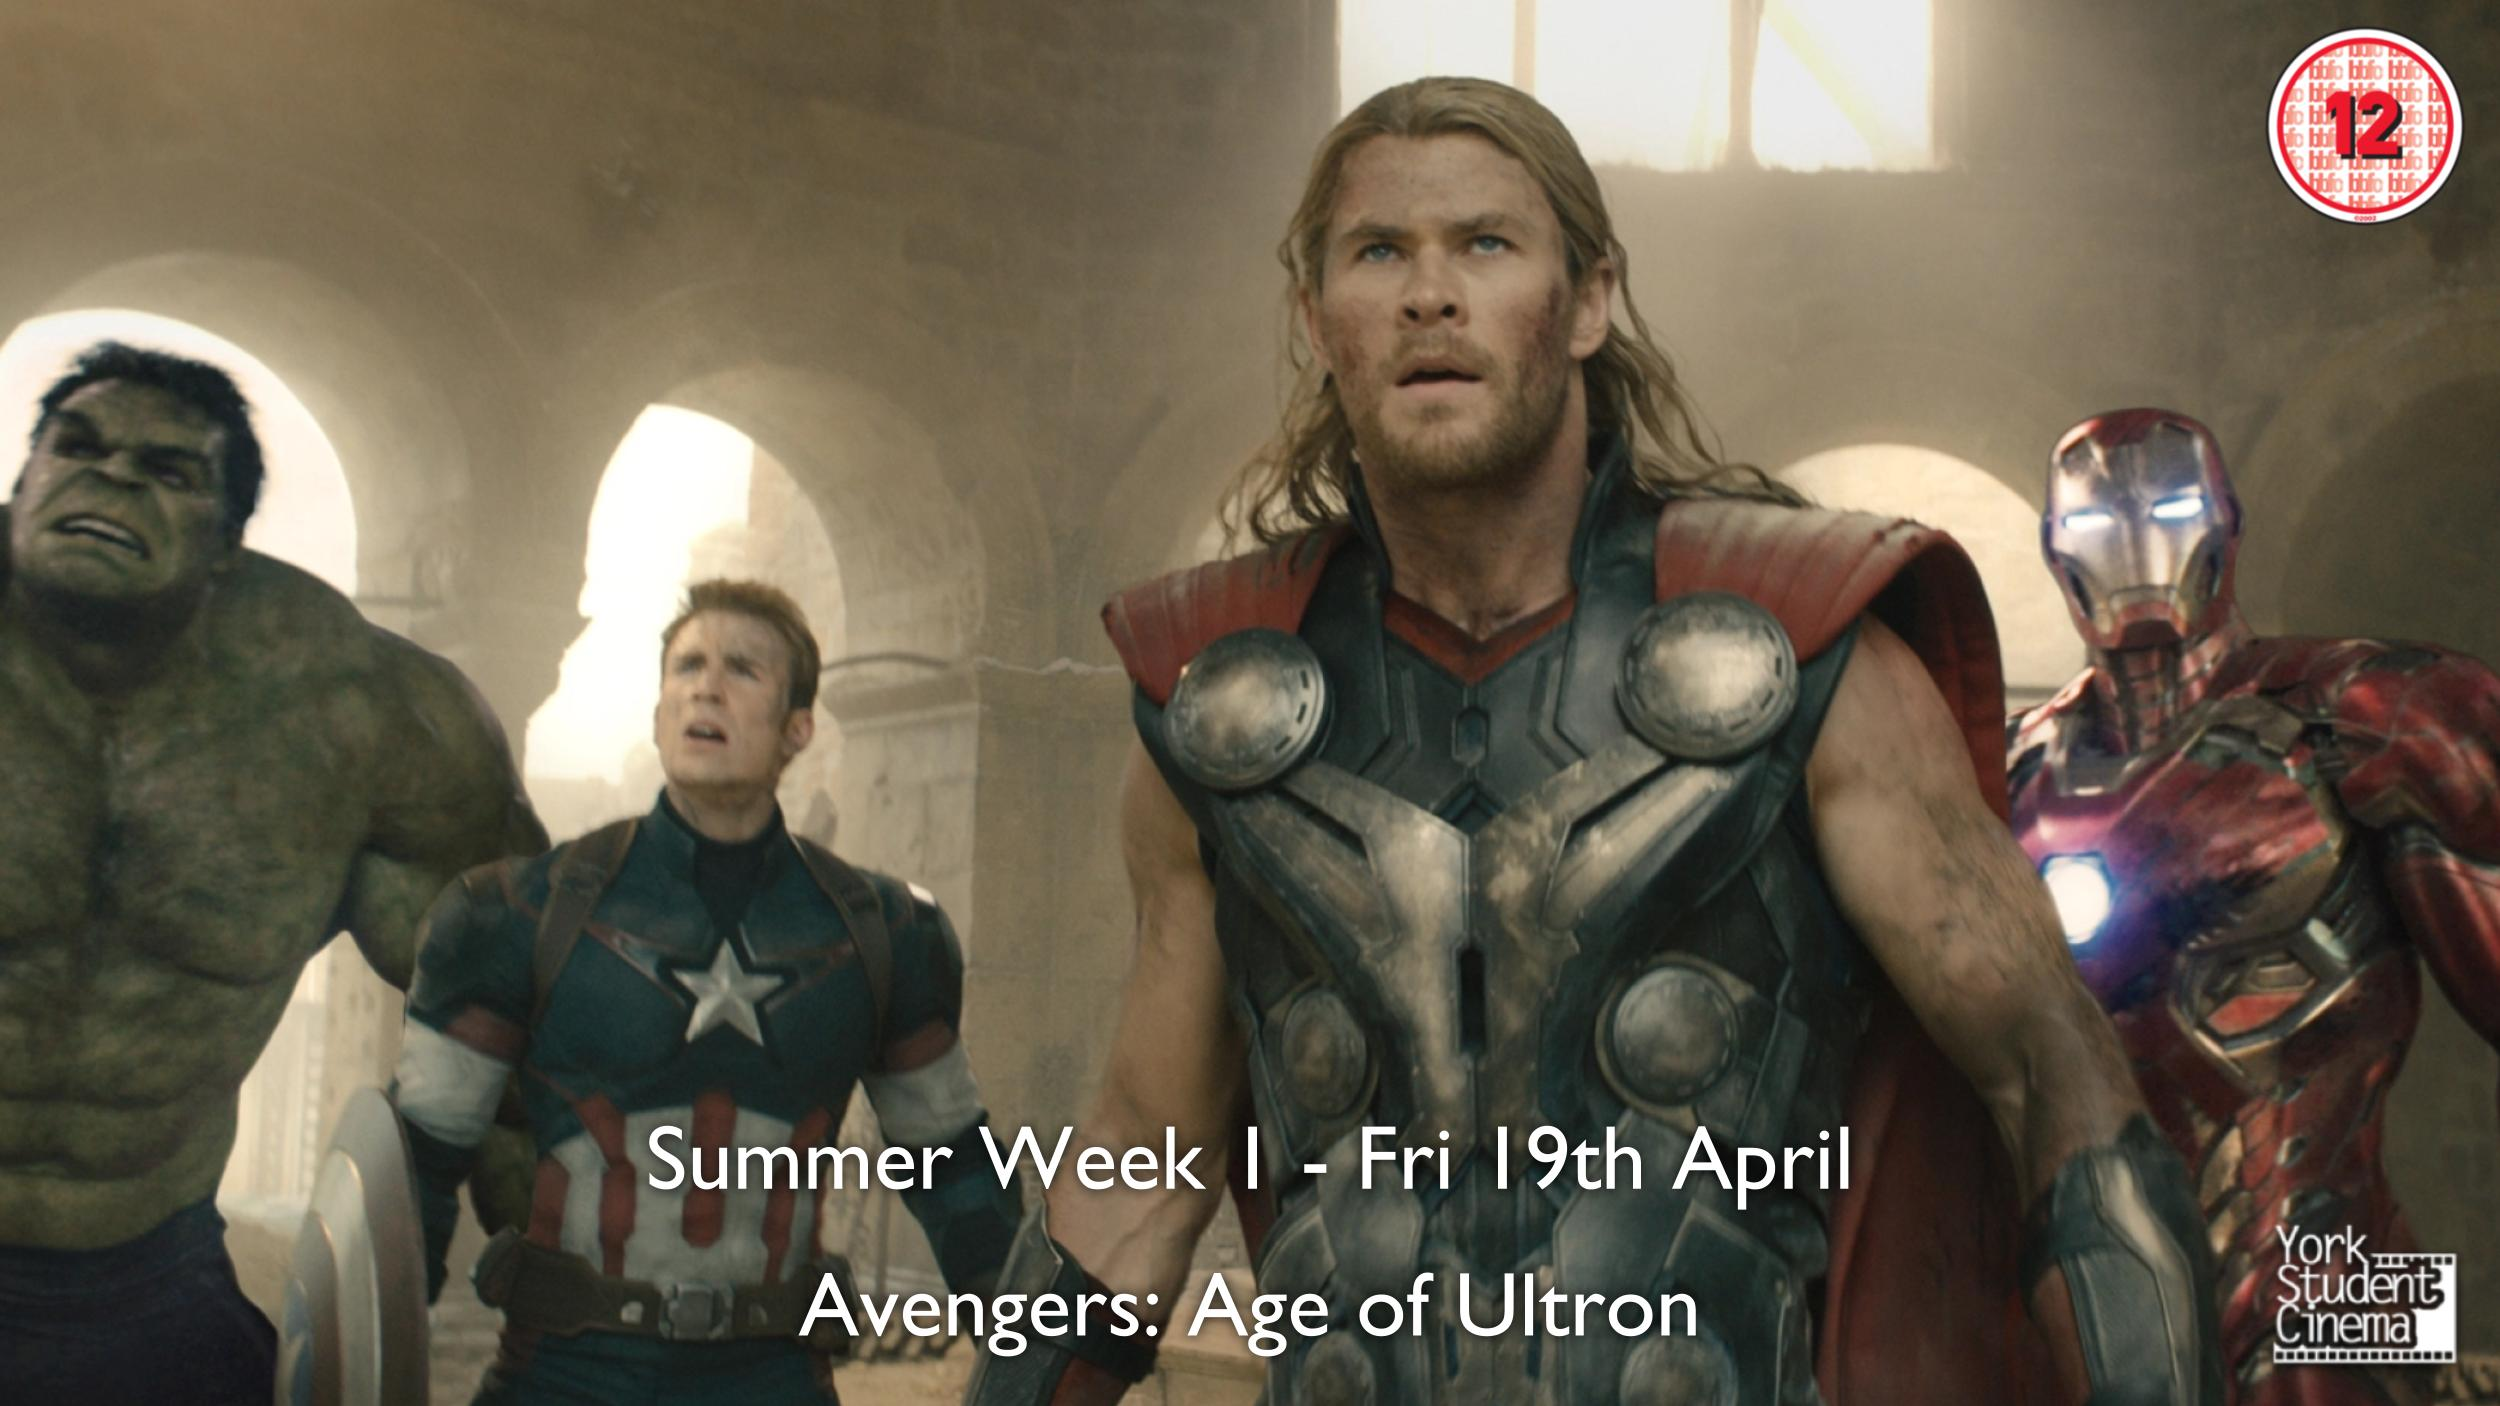 YSC Screening of Avengers: Age of Ultron